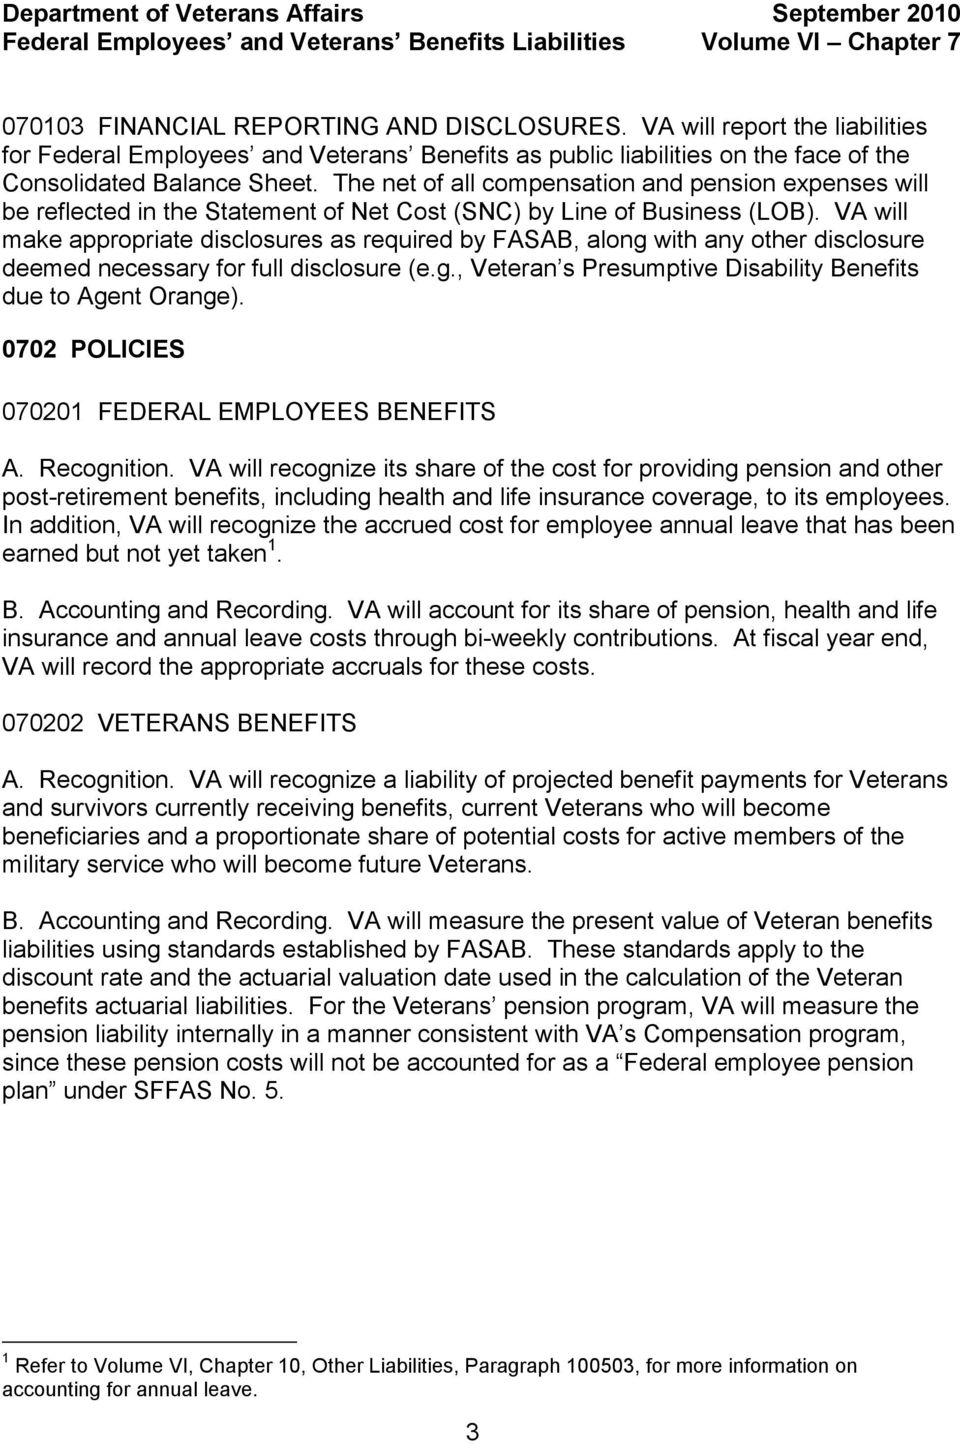 VA will make appropriate disclosures as required by FASAB, along with any other disclosure deemed necessary for full disclosure (e.g., Veteran s Presumptive Disability Benefits due to Agent Orange).